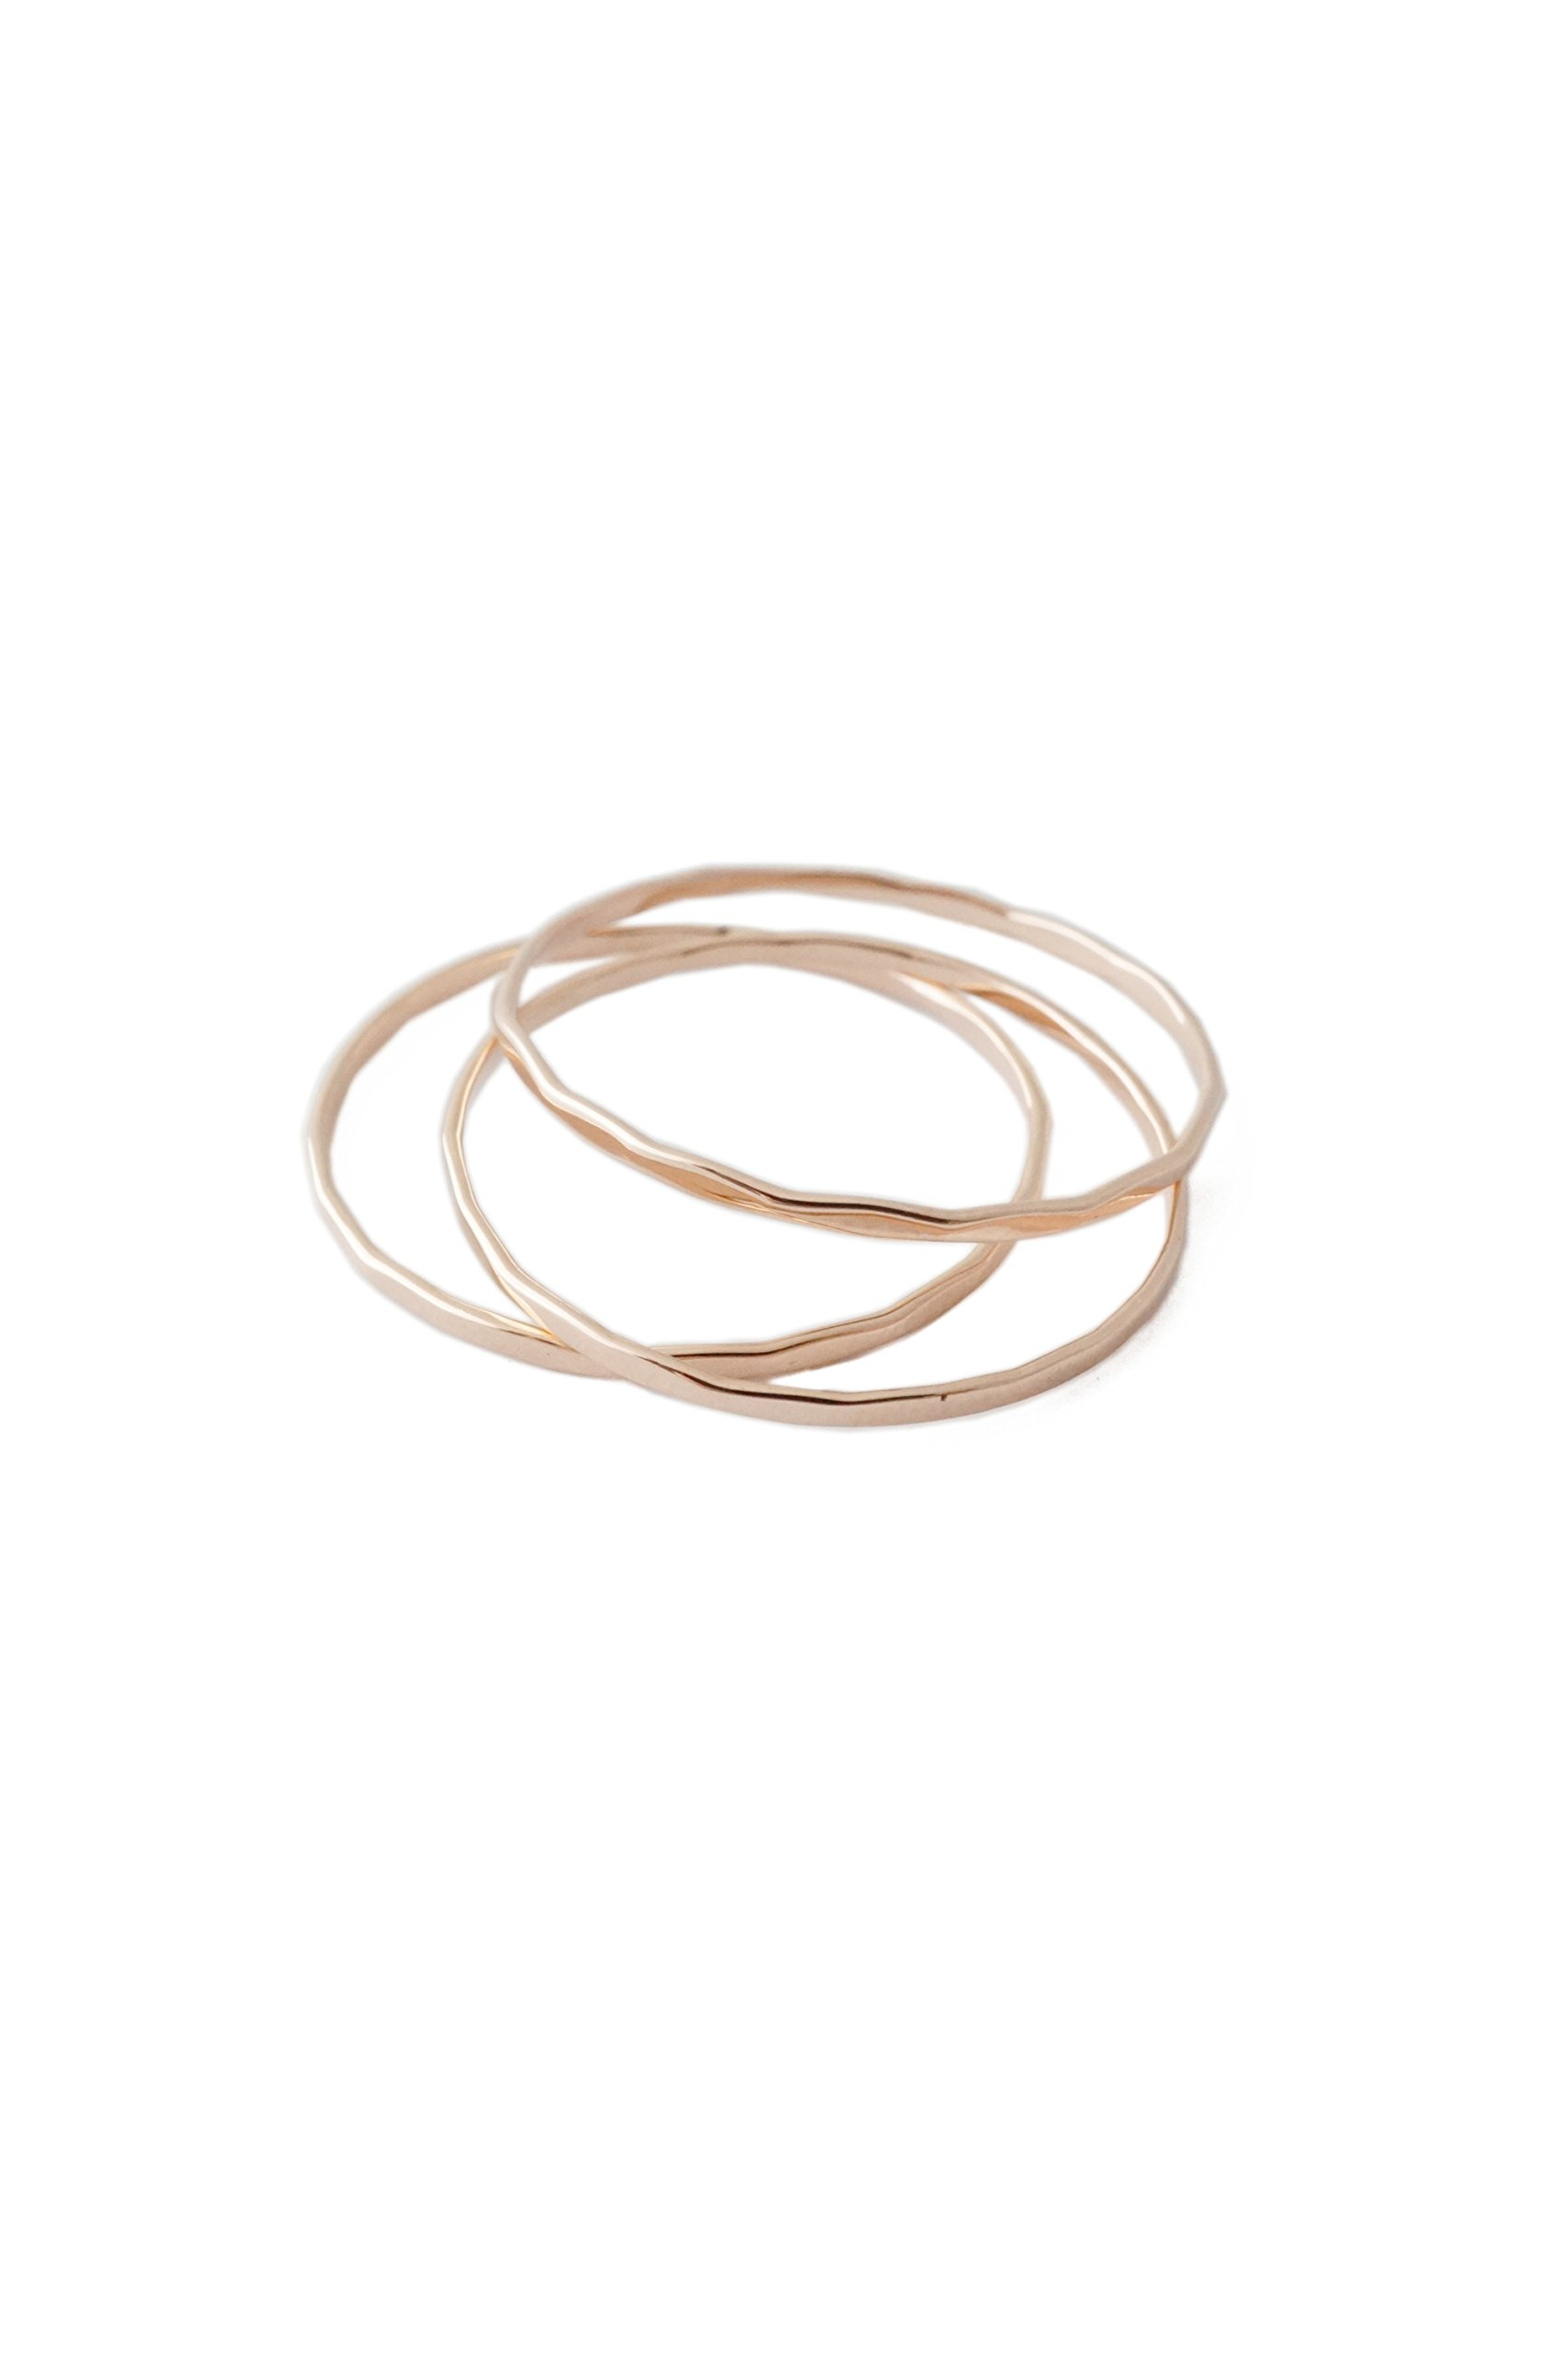 HONEYCAT Super Skinny Hammered Stacking Rings Trio Set | Minimalist, Delicate Jewelry